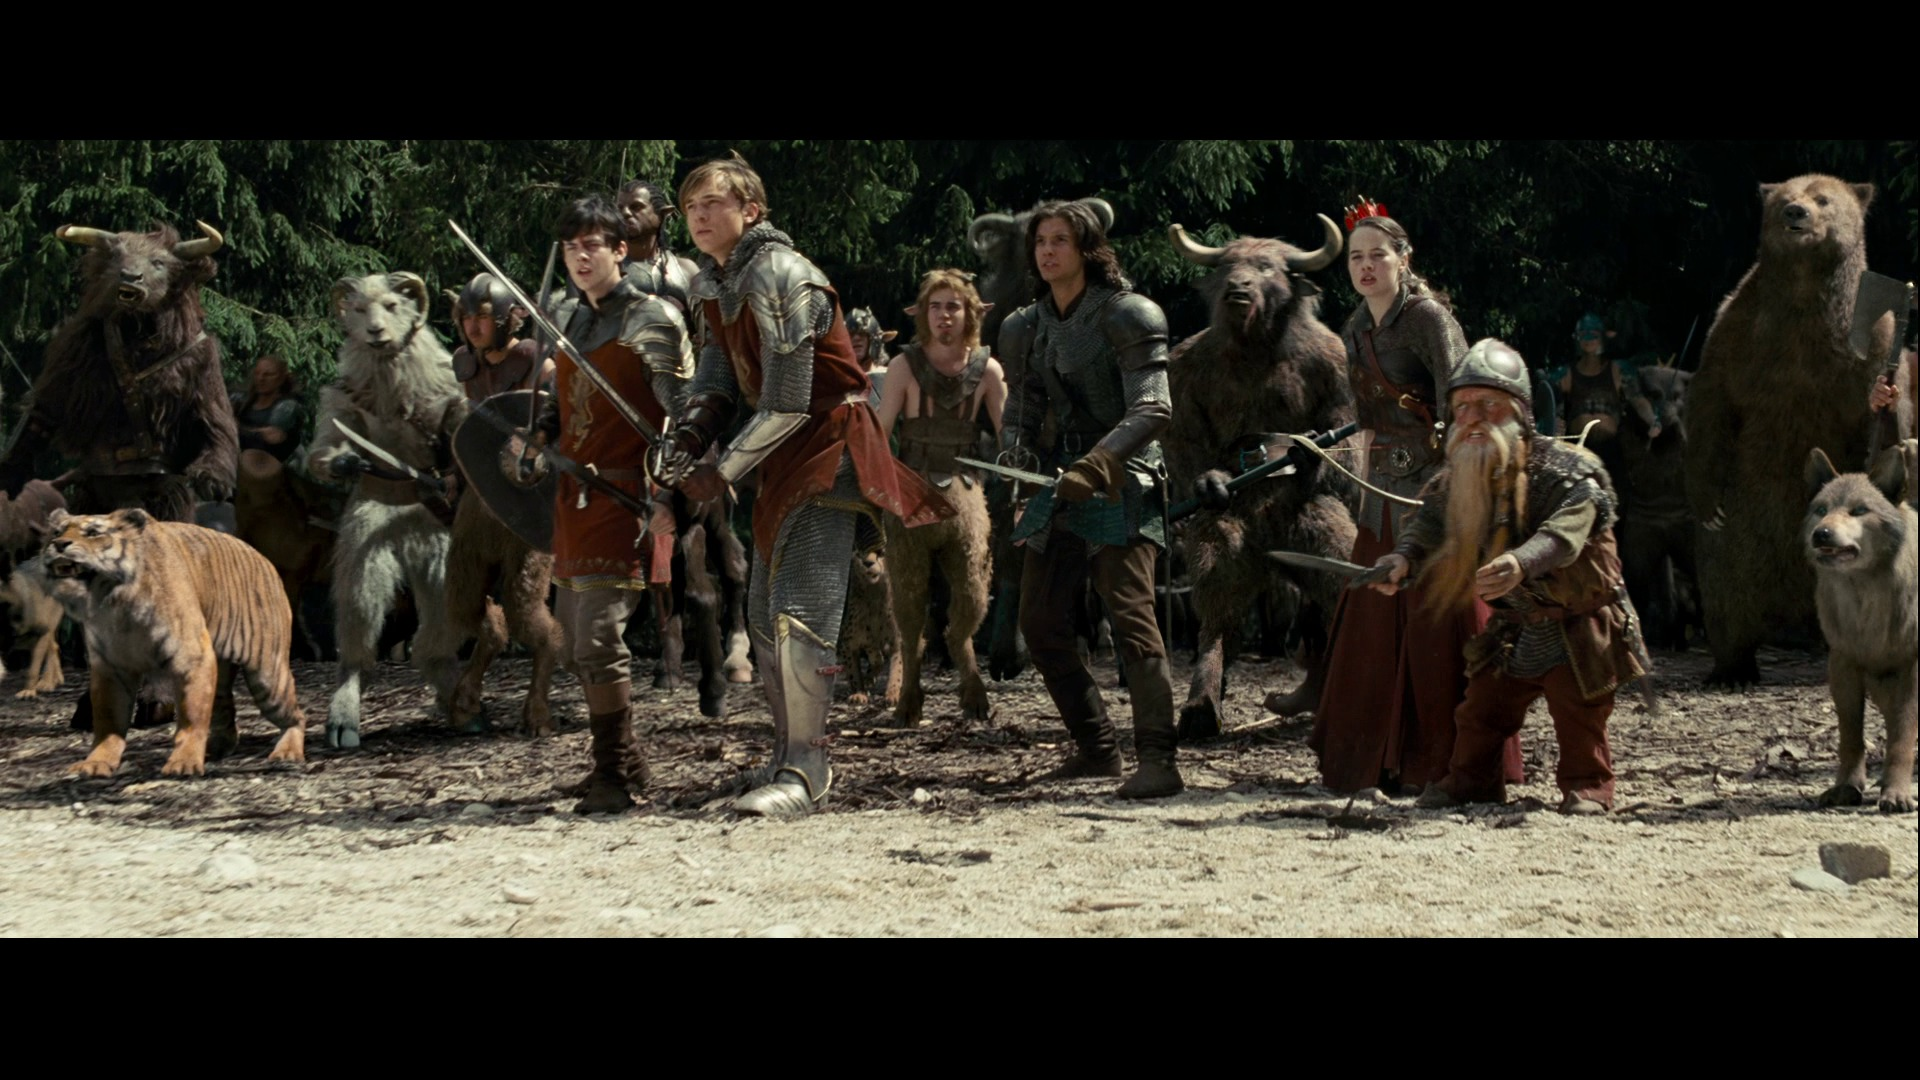 Tsp2008 The Chronicles Of Narnia Prince Caspian Random